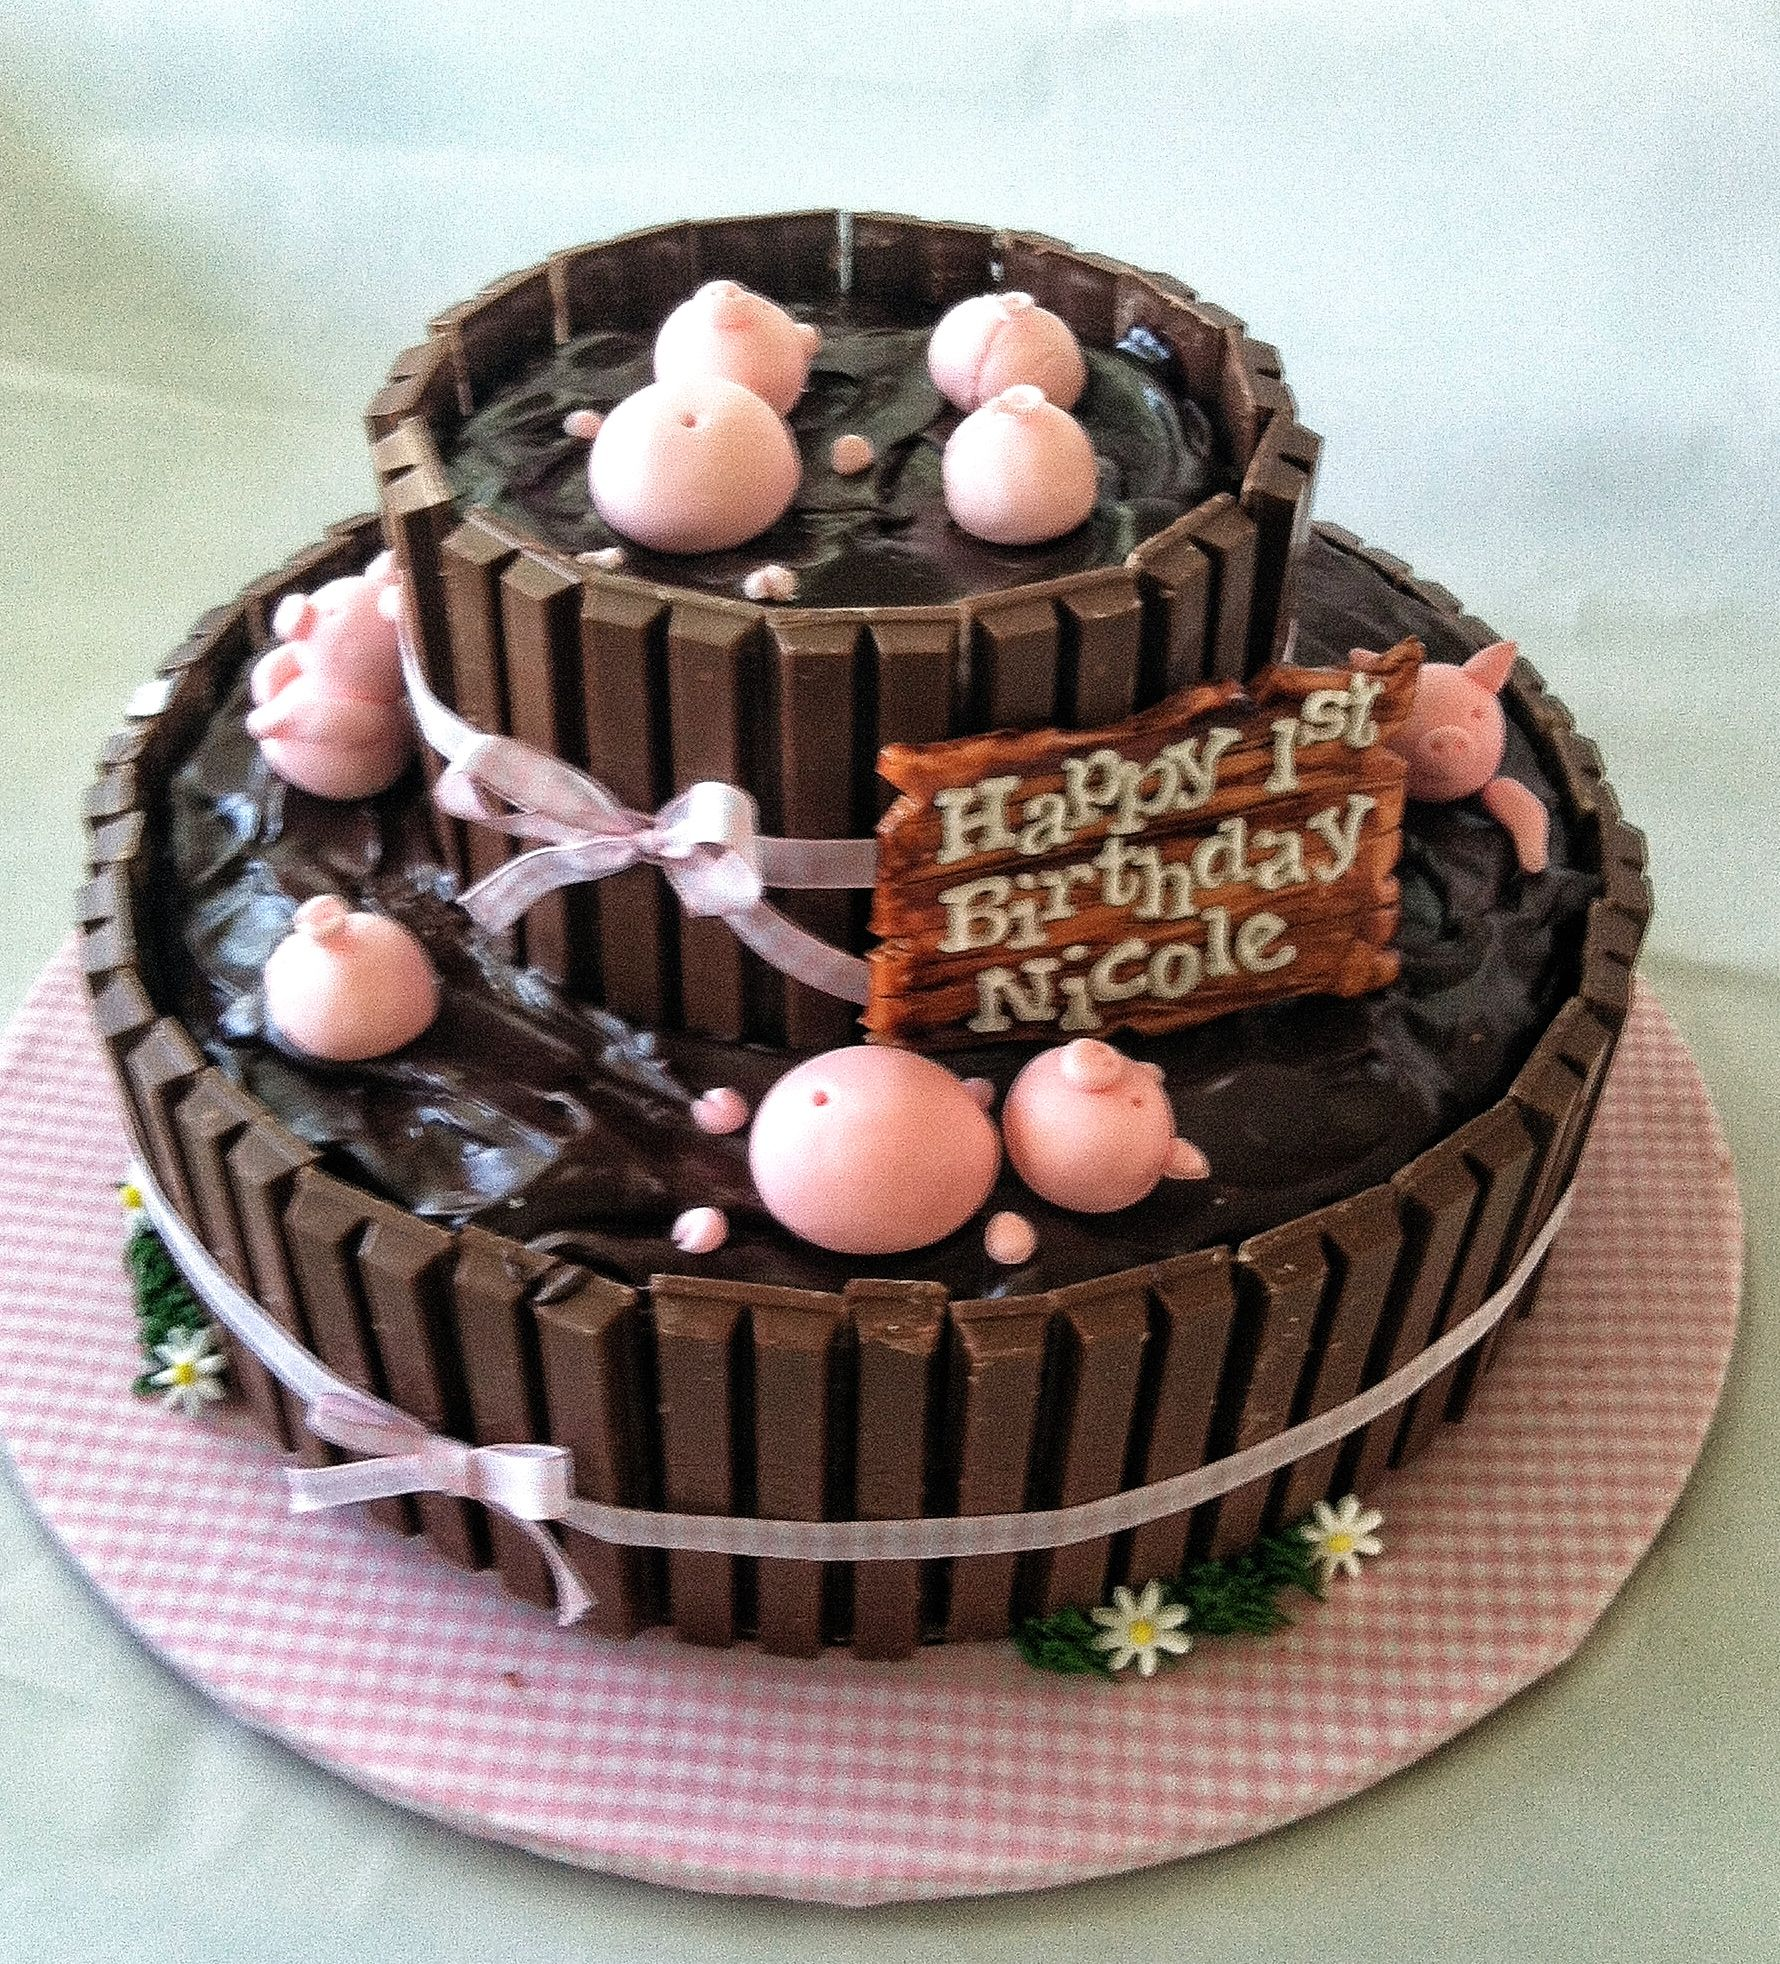 Kitkat Chocolate Cake Images : Piggy kit kat cake Cakes Pinterest